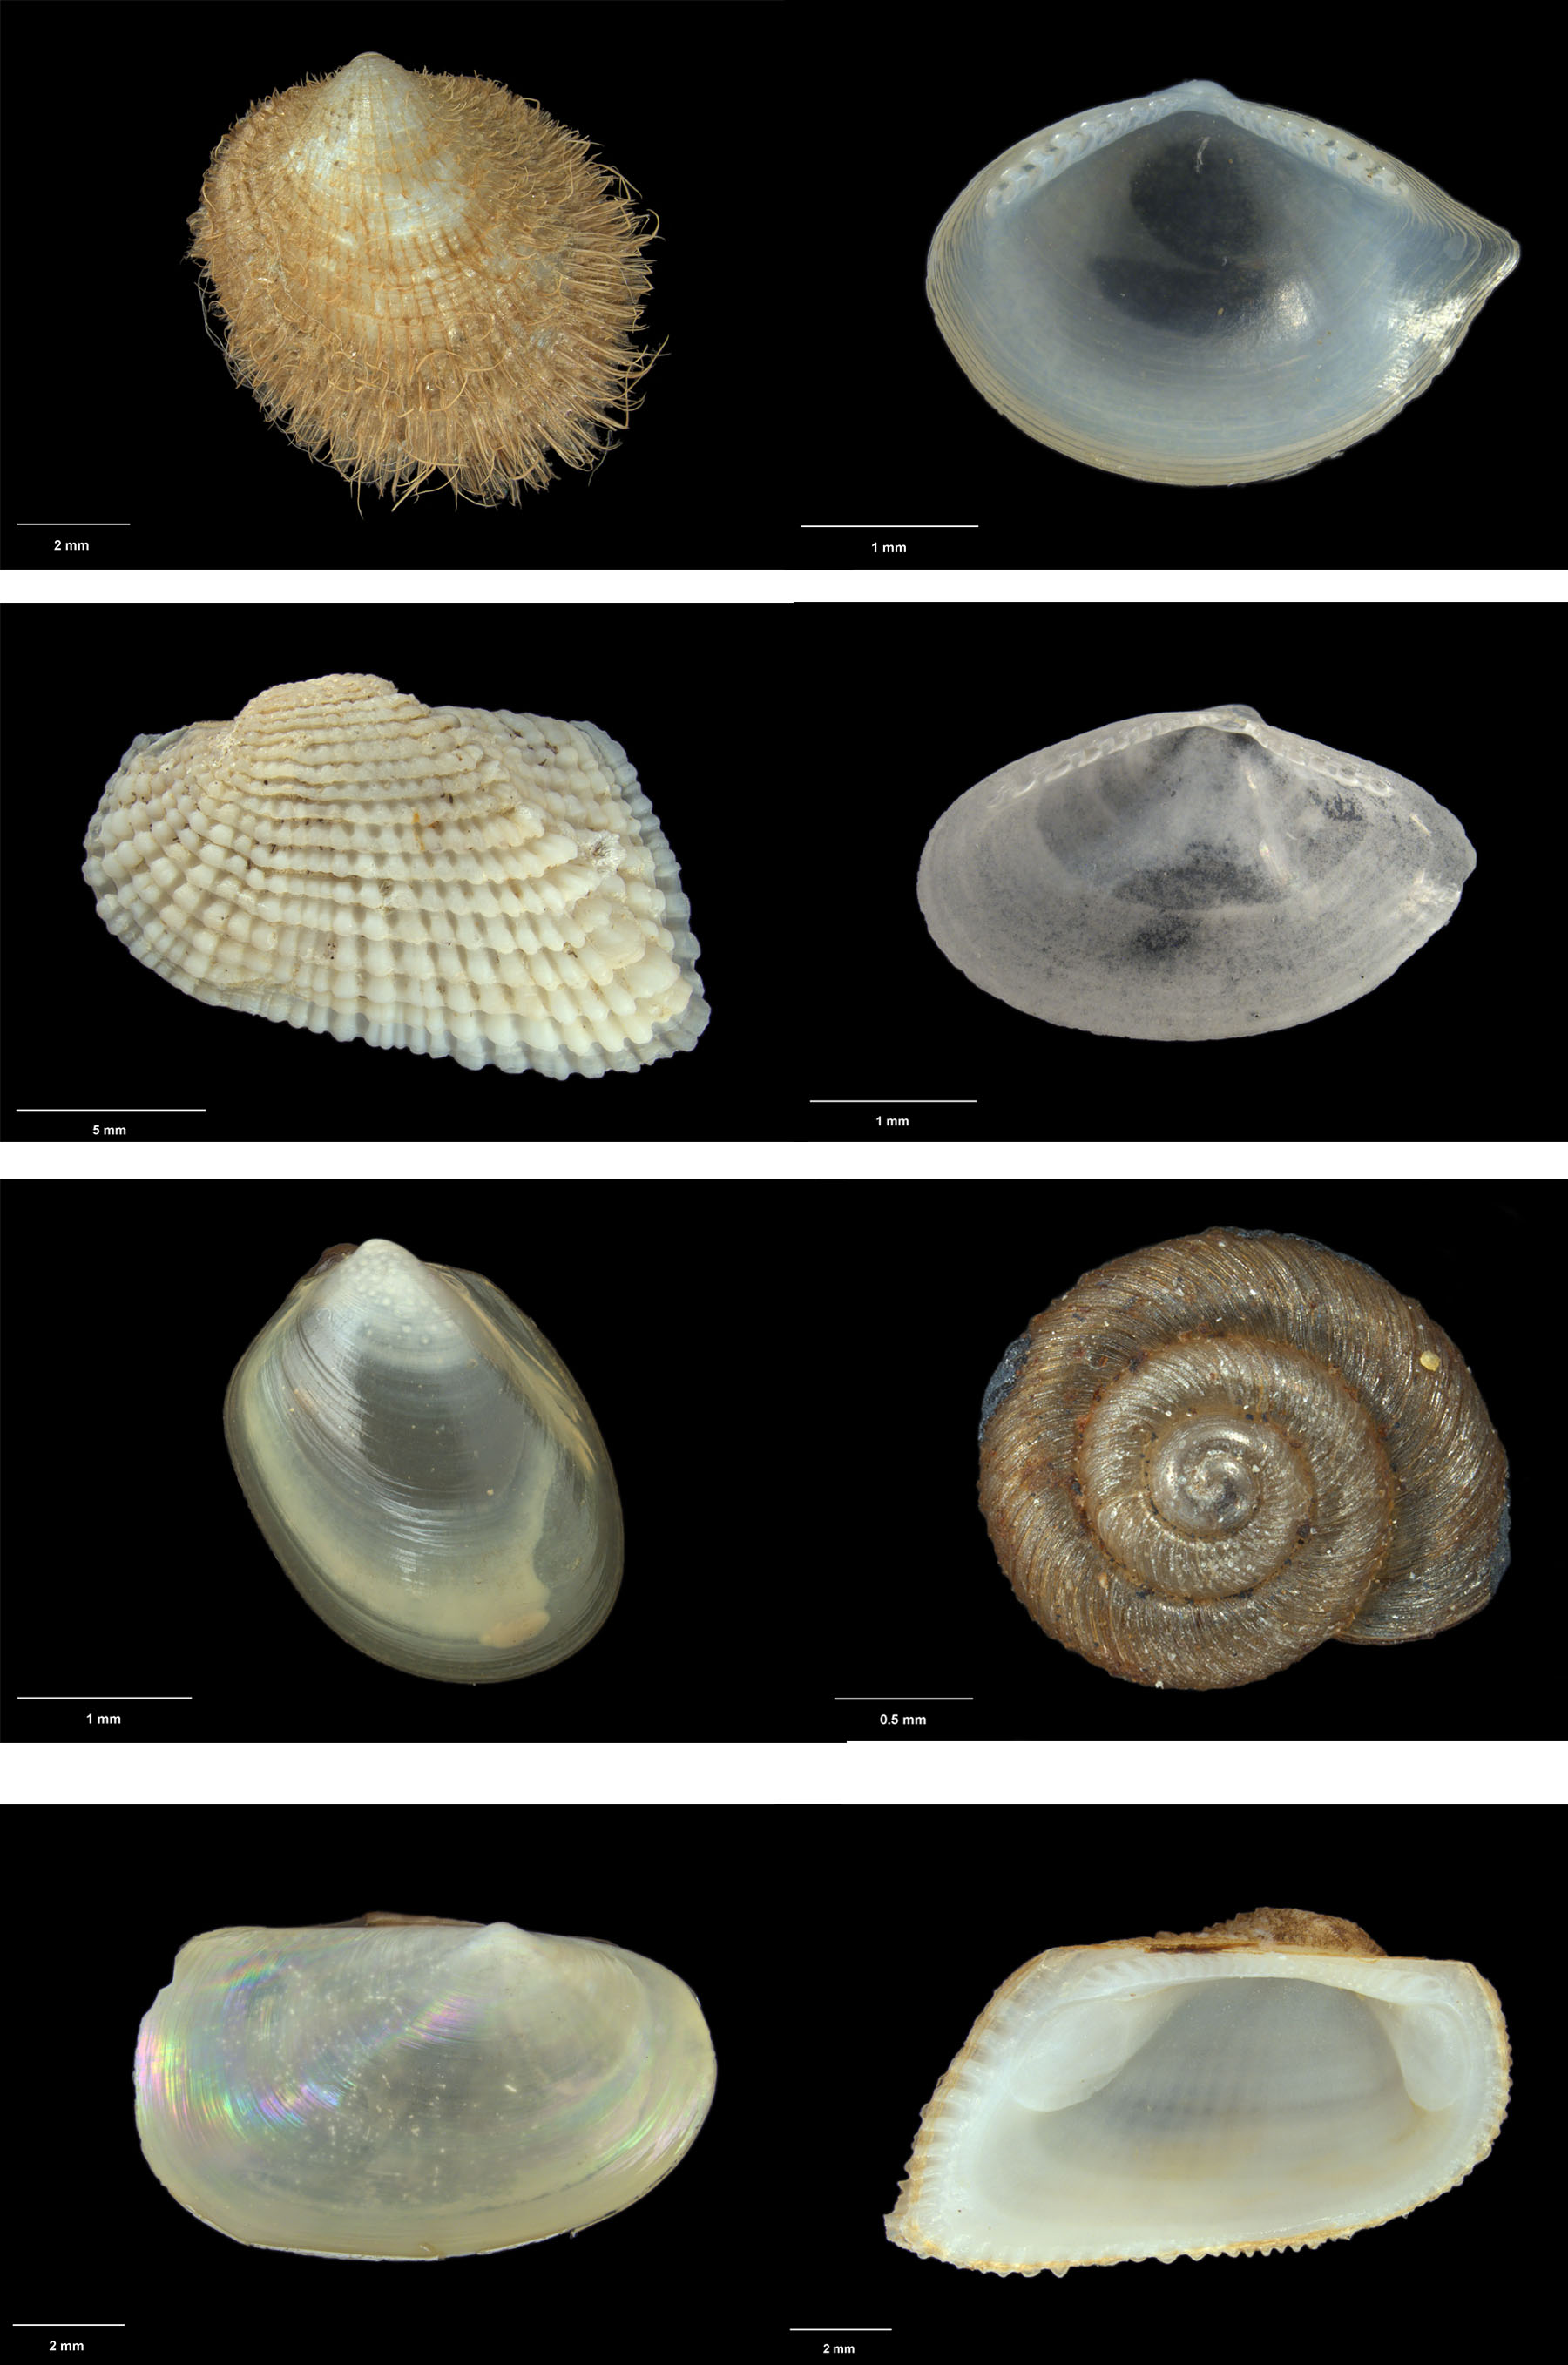 A selection of close up shell images produced with the new microscope using an image stacking process